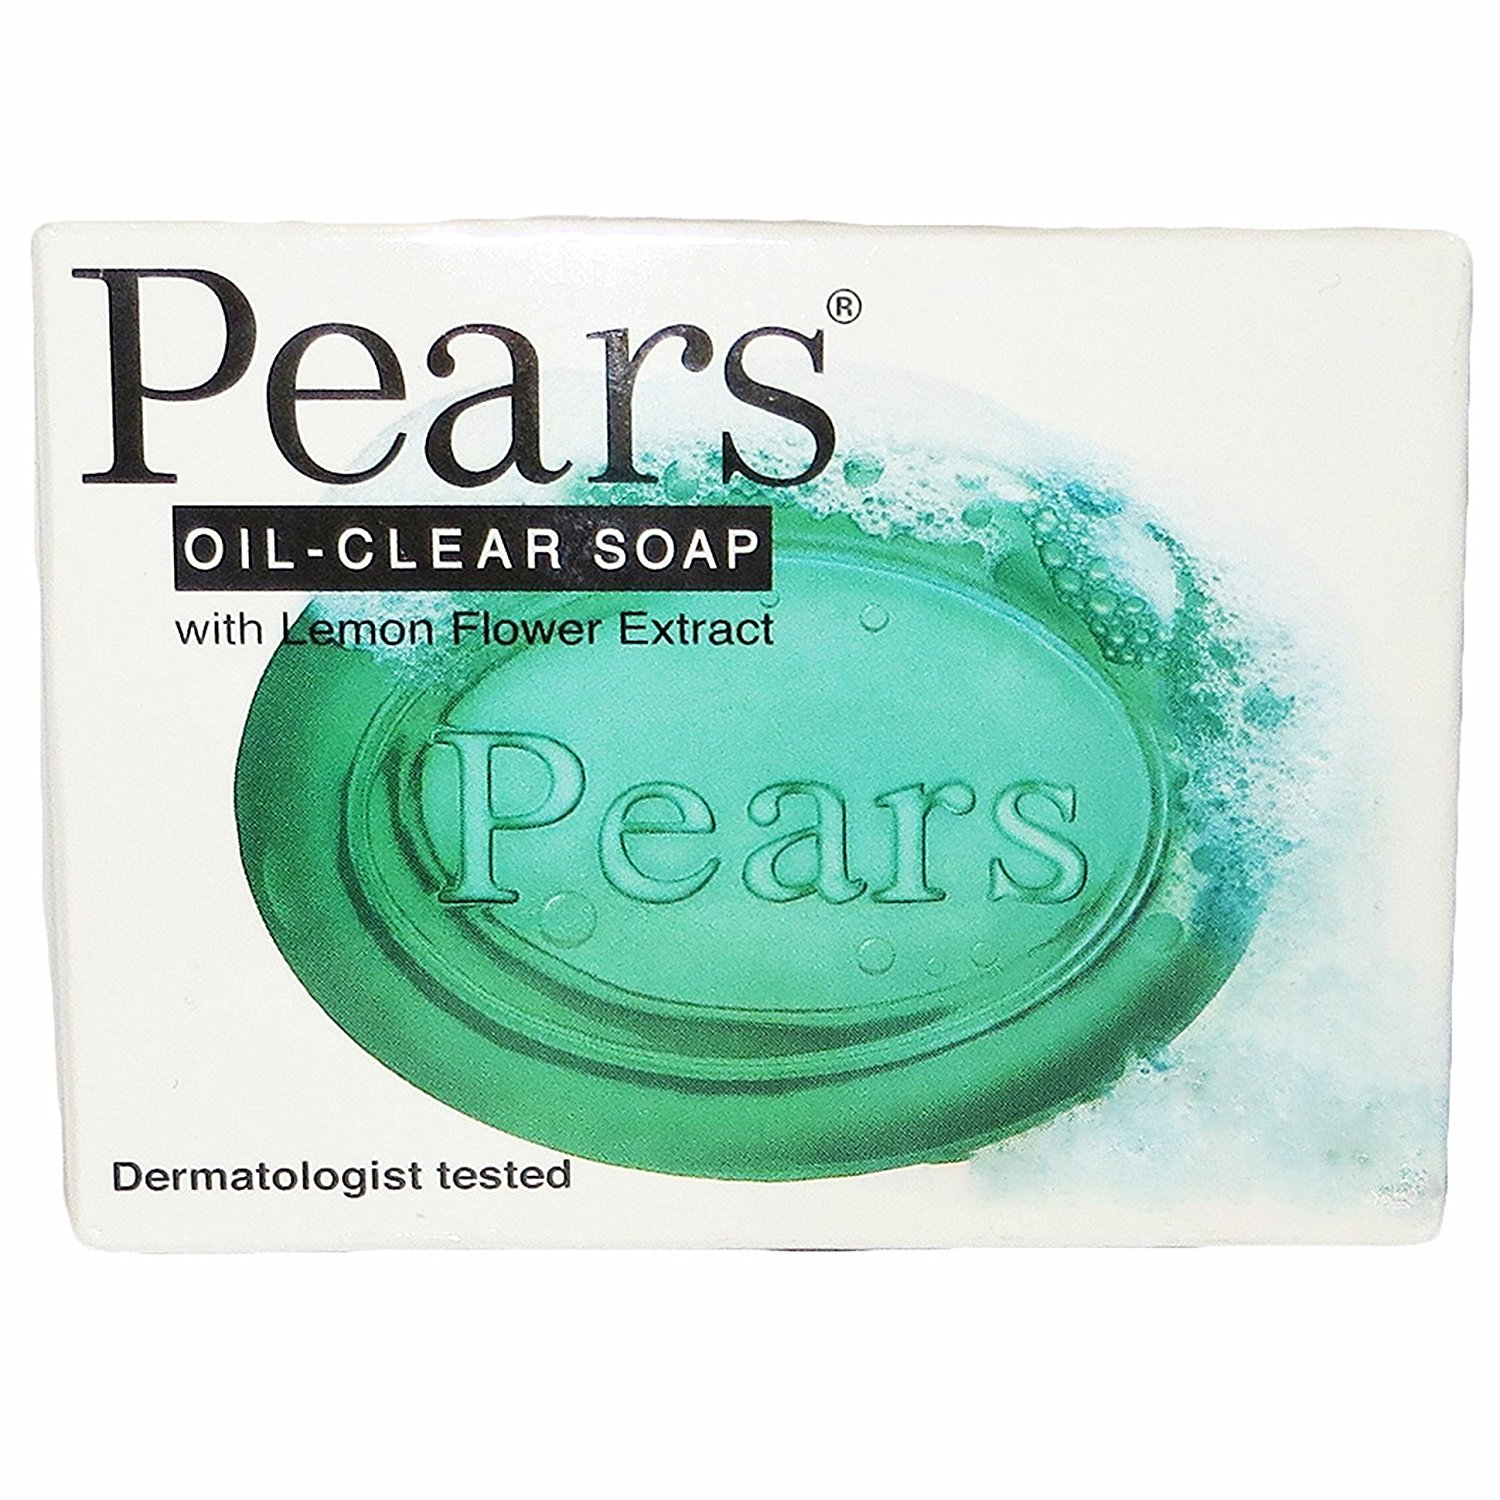 Pears Oil-clear Bar Soap, with Lemon Flower Extract, Dermatologist Tested, 3.5 Ounces (Pack of 12)